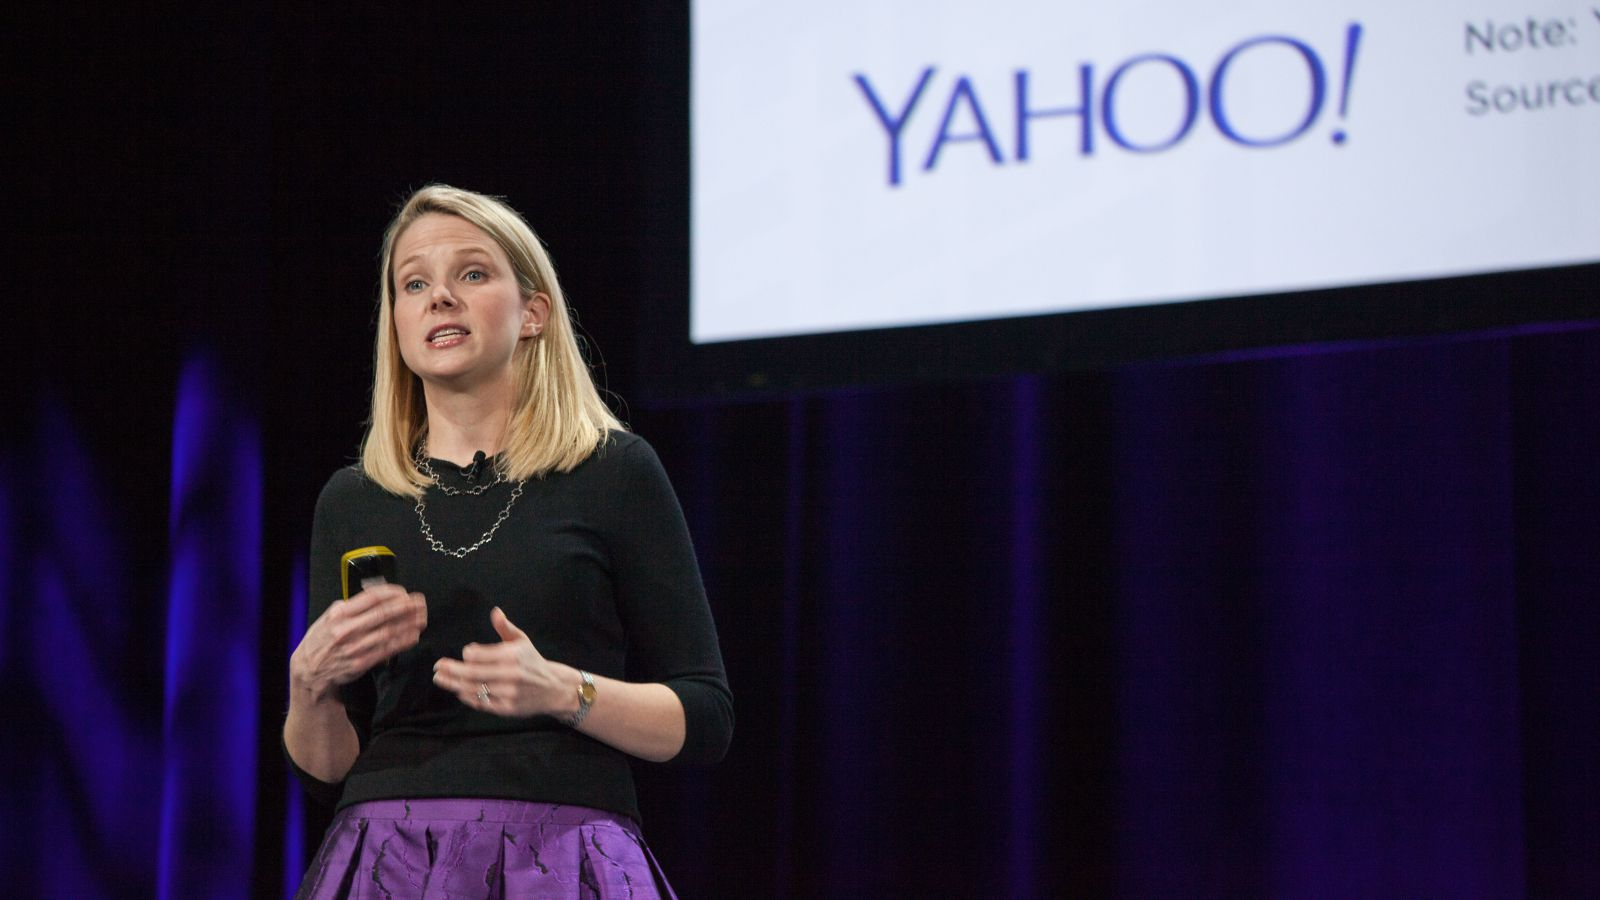 marissa-mayer-yahoo-dev-conference